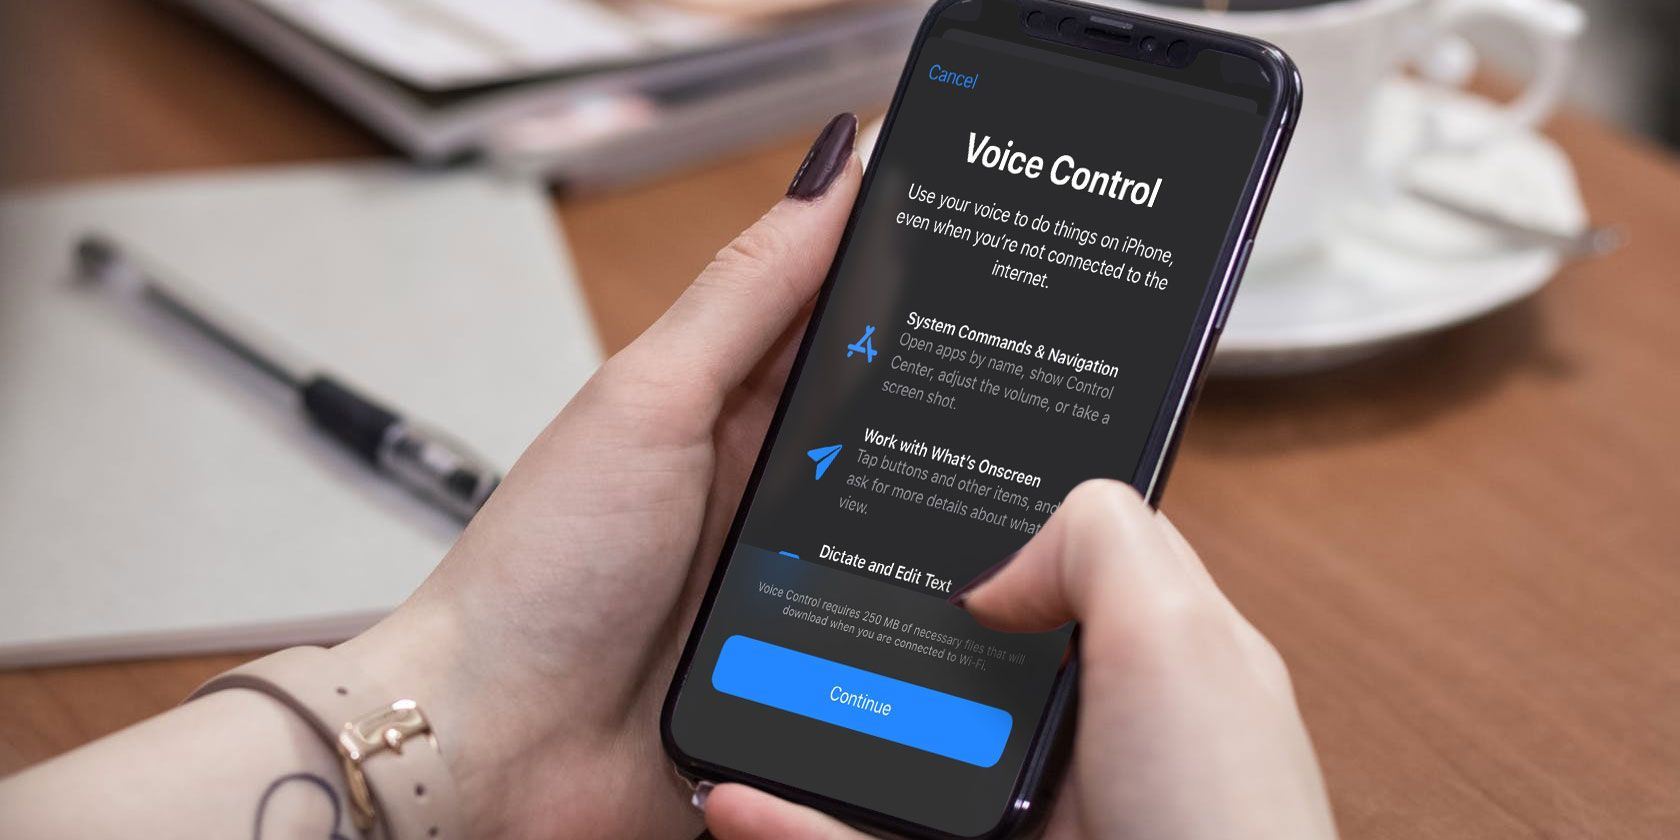 How to HandsFree Voice Control Your iPhone With iOS 13